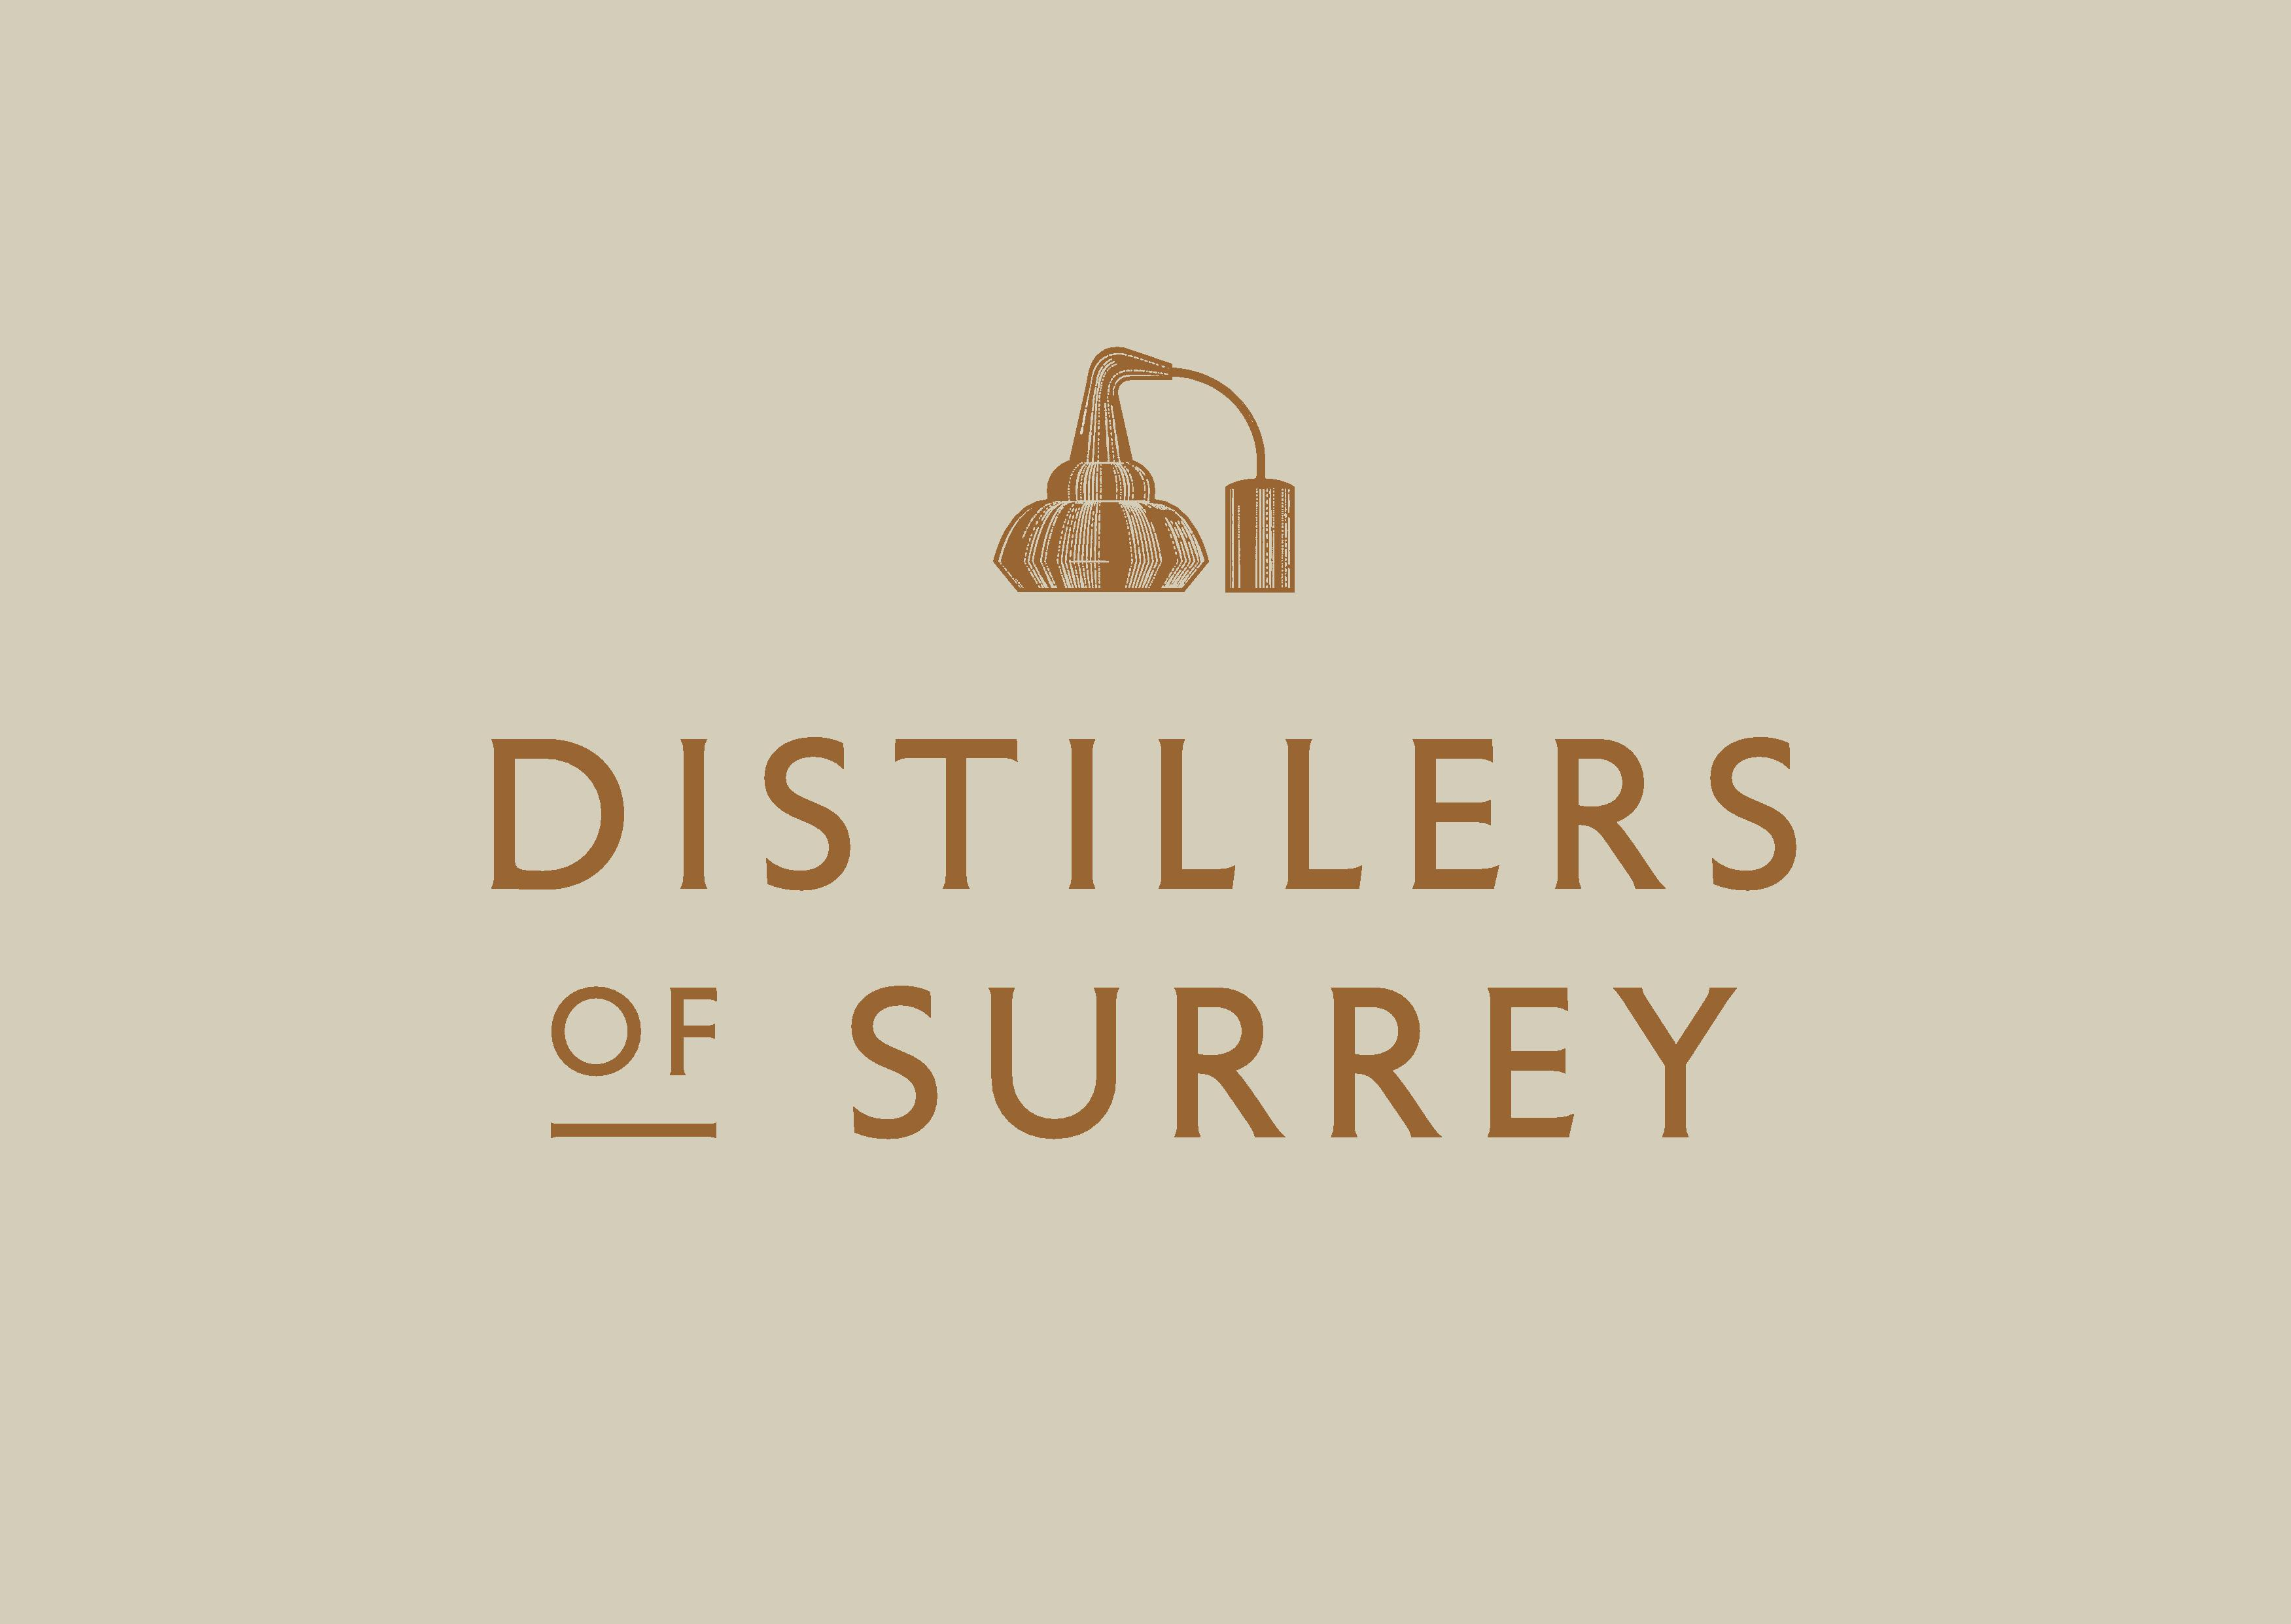 Distillers Of Surrey in